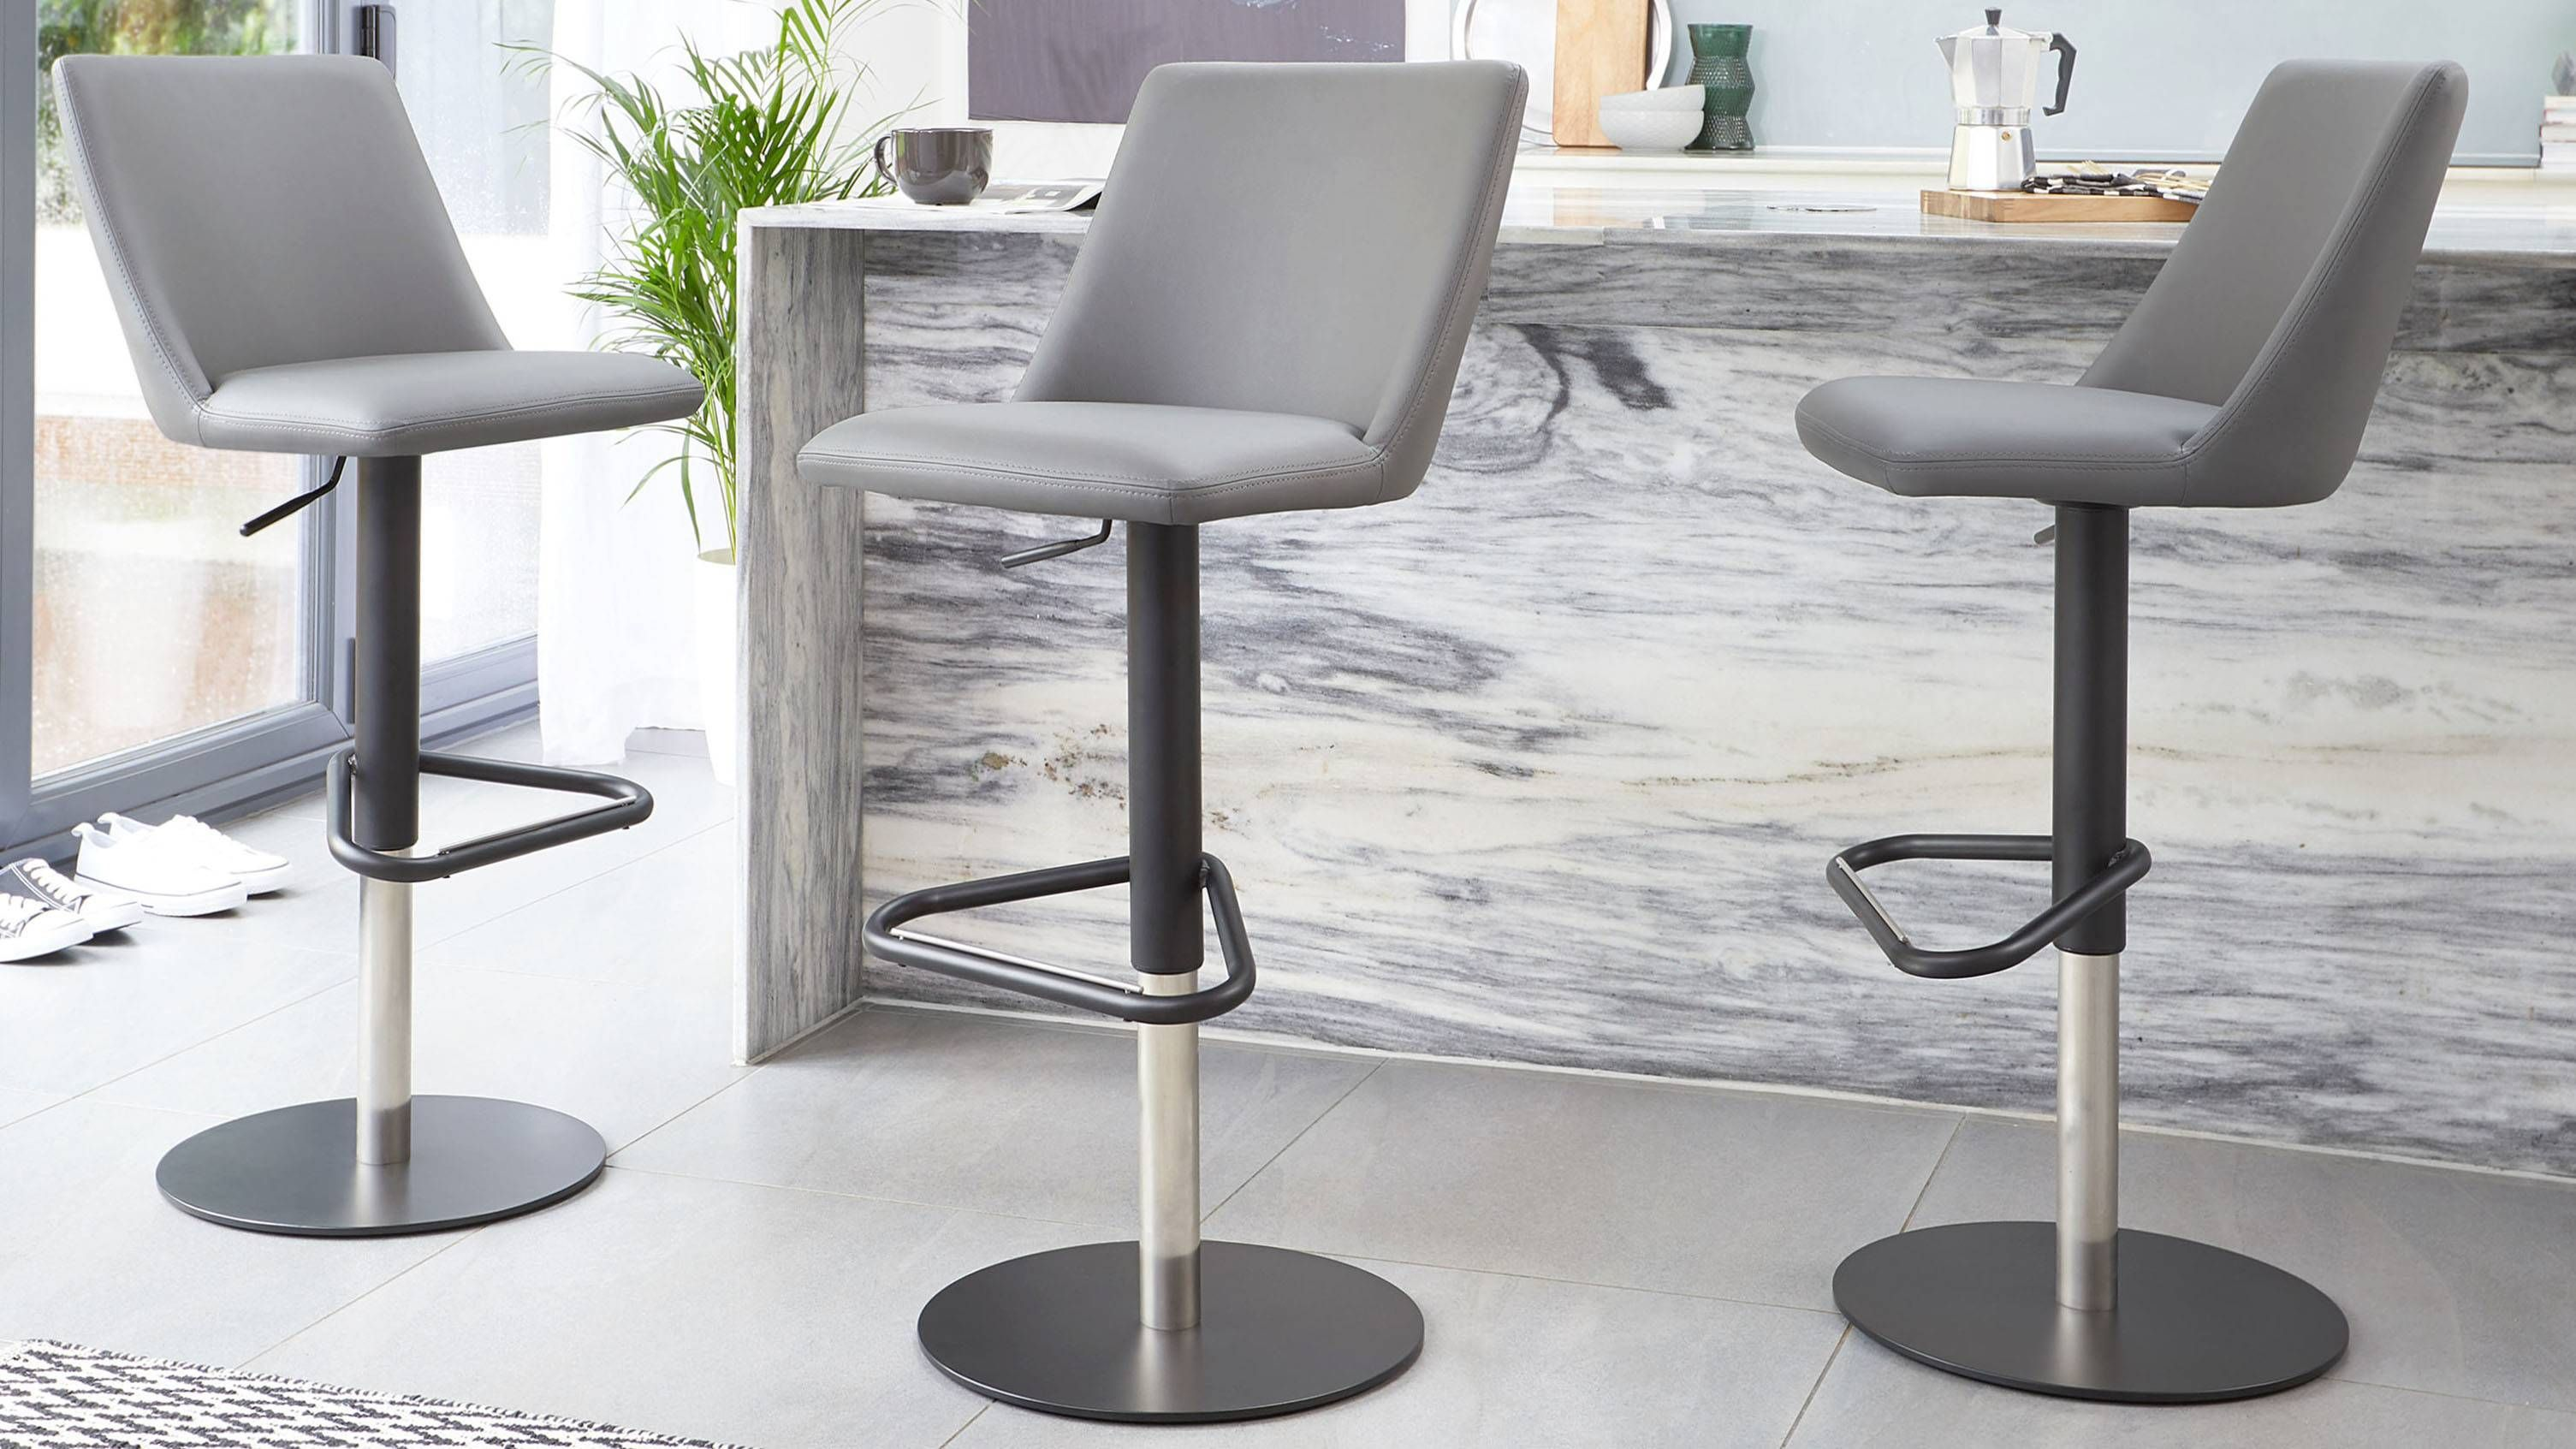 Miraculous Dante Matt Black Gas Lift Bar Stool In 2019 Modern Bar Gmtry Best Dining Table And Chair Ideas Images Gmtryco